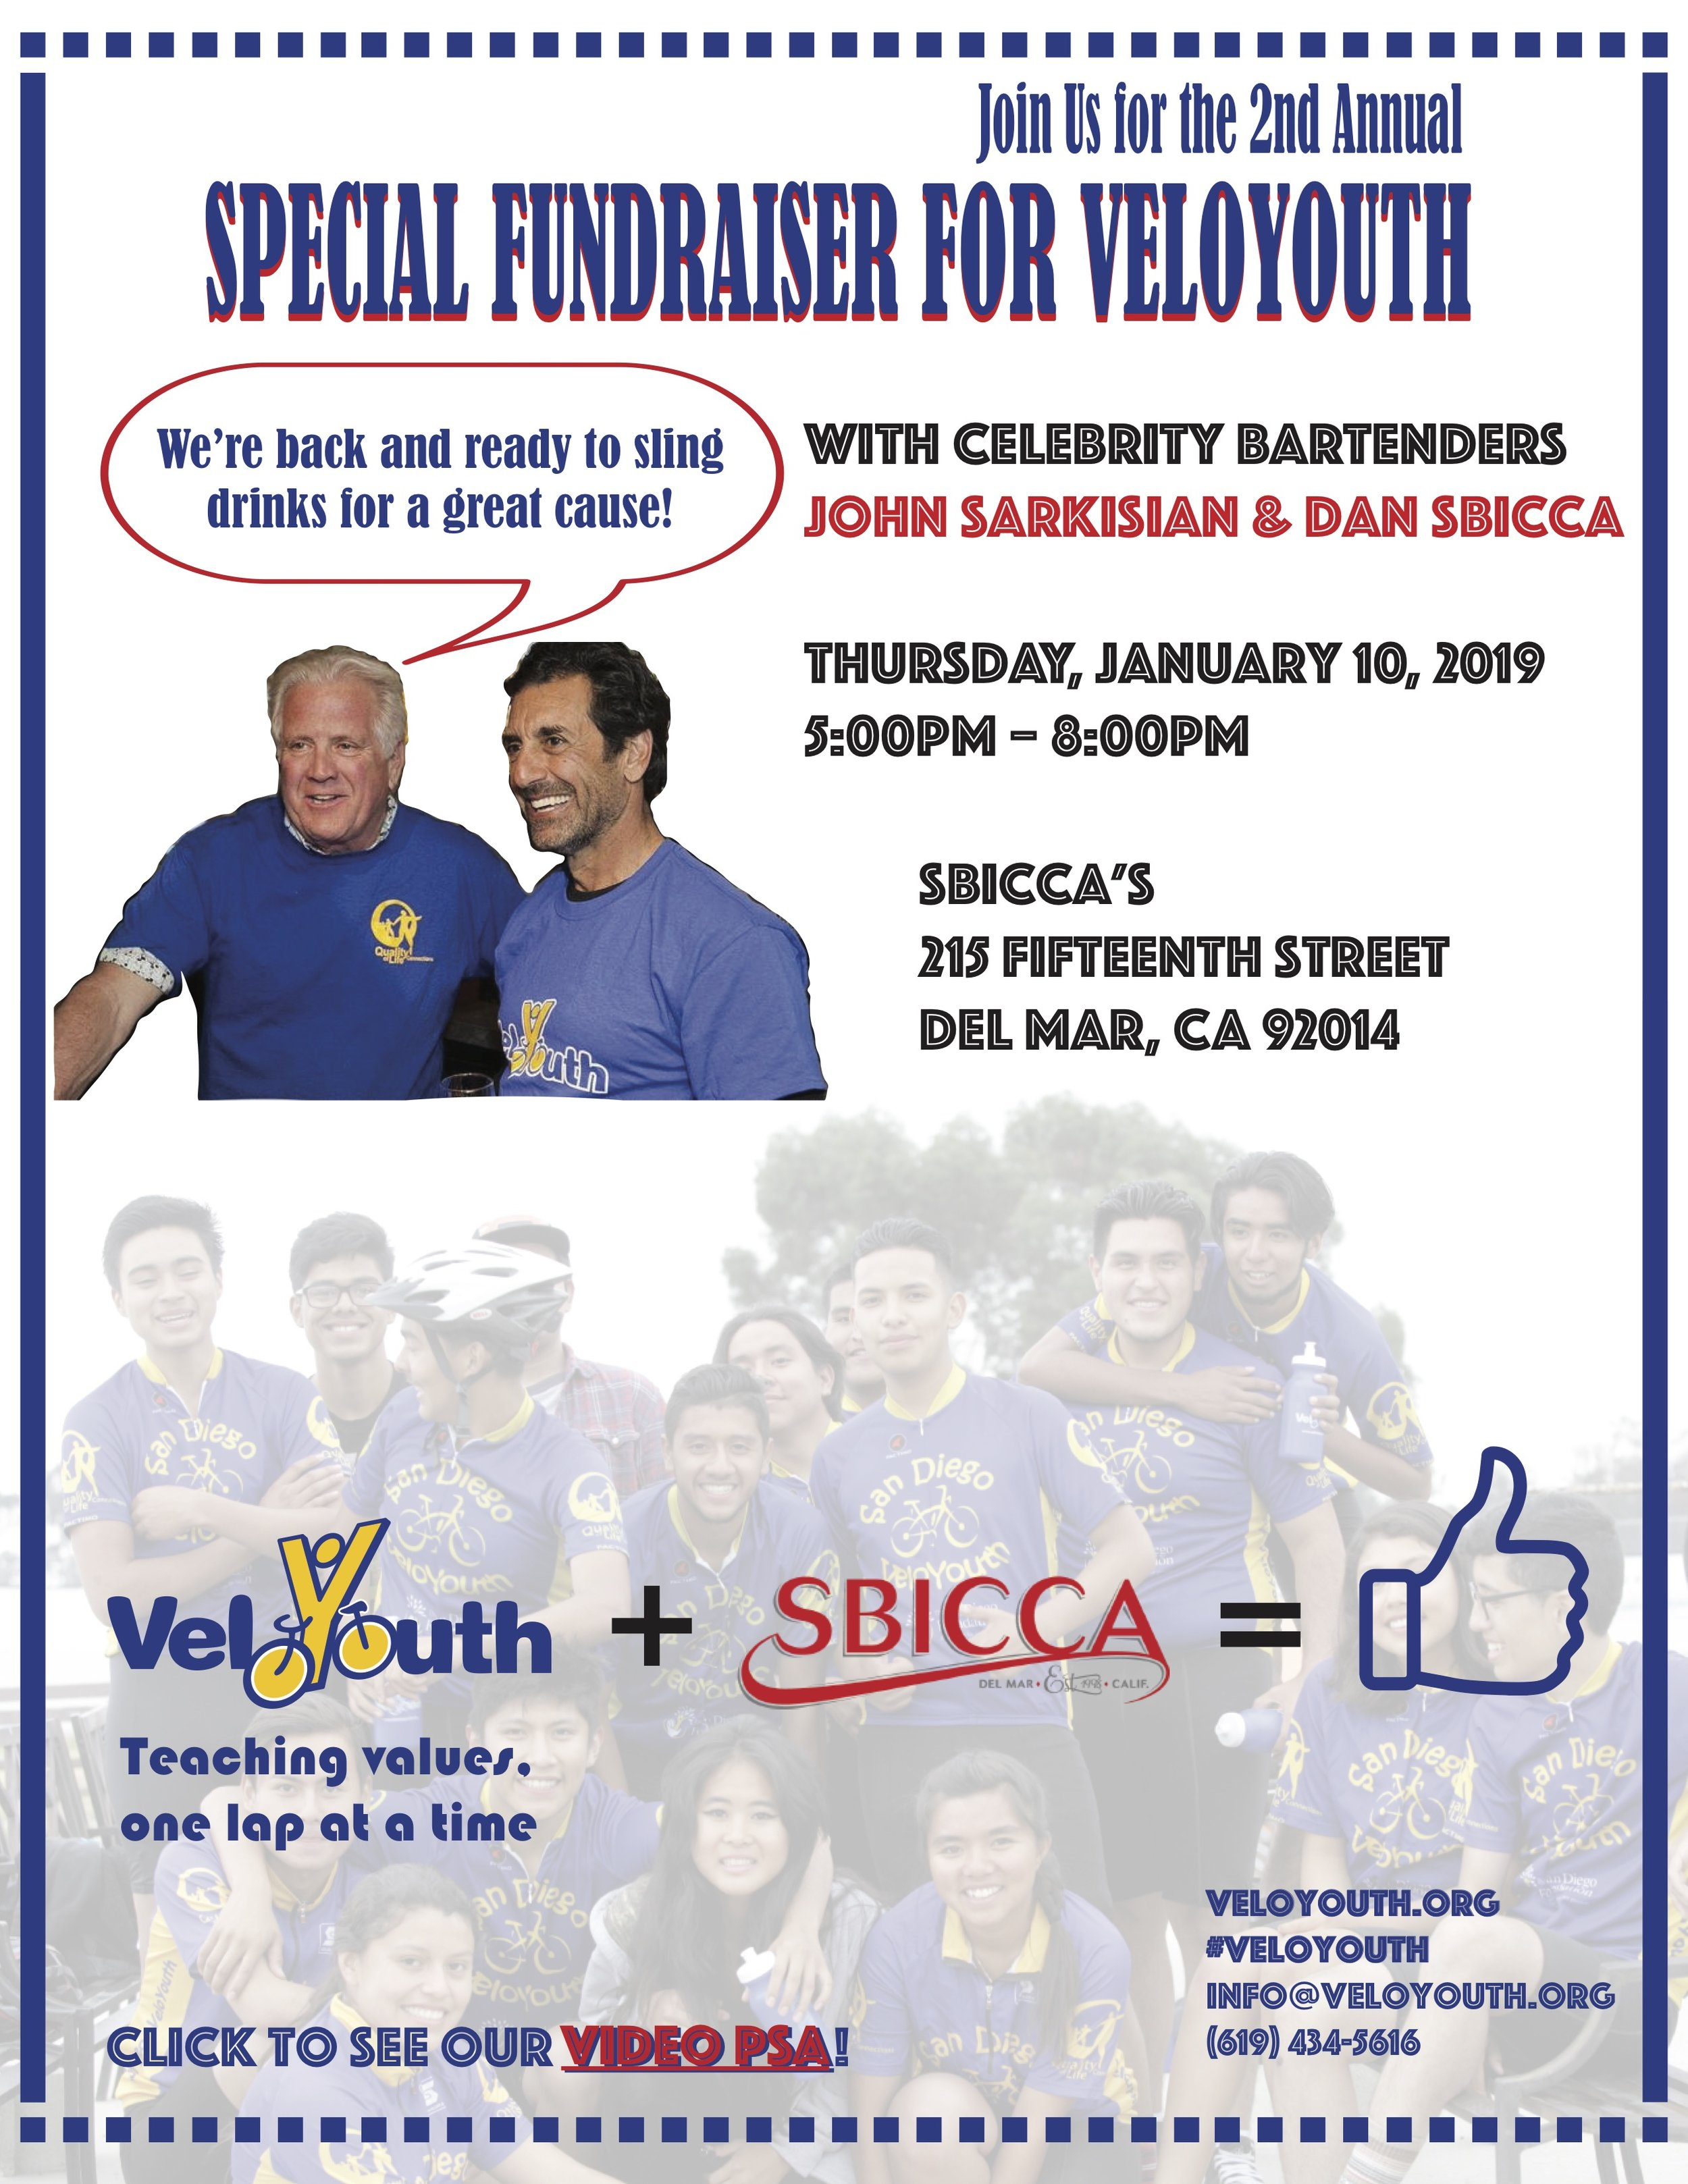 VeloYouth Sbicca Fundraiser January 2019 Compressed.jpg